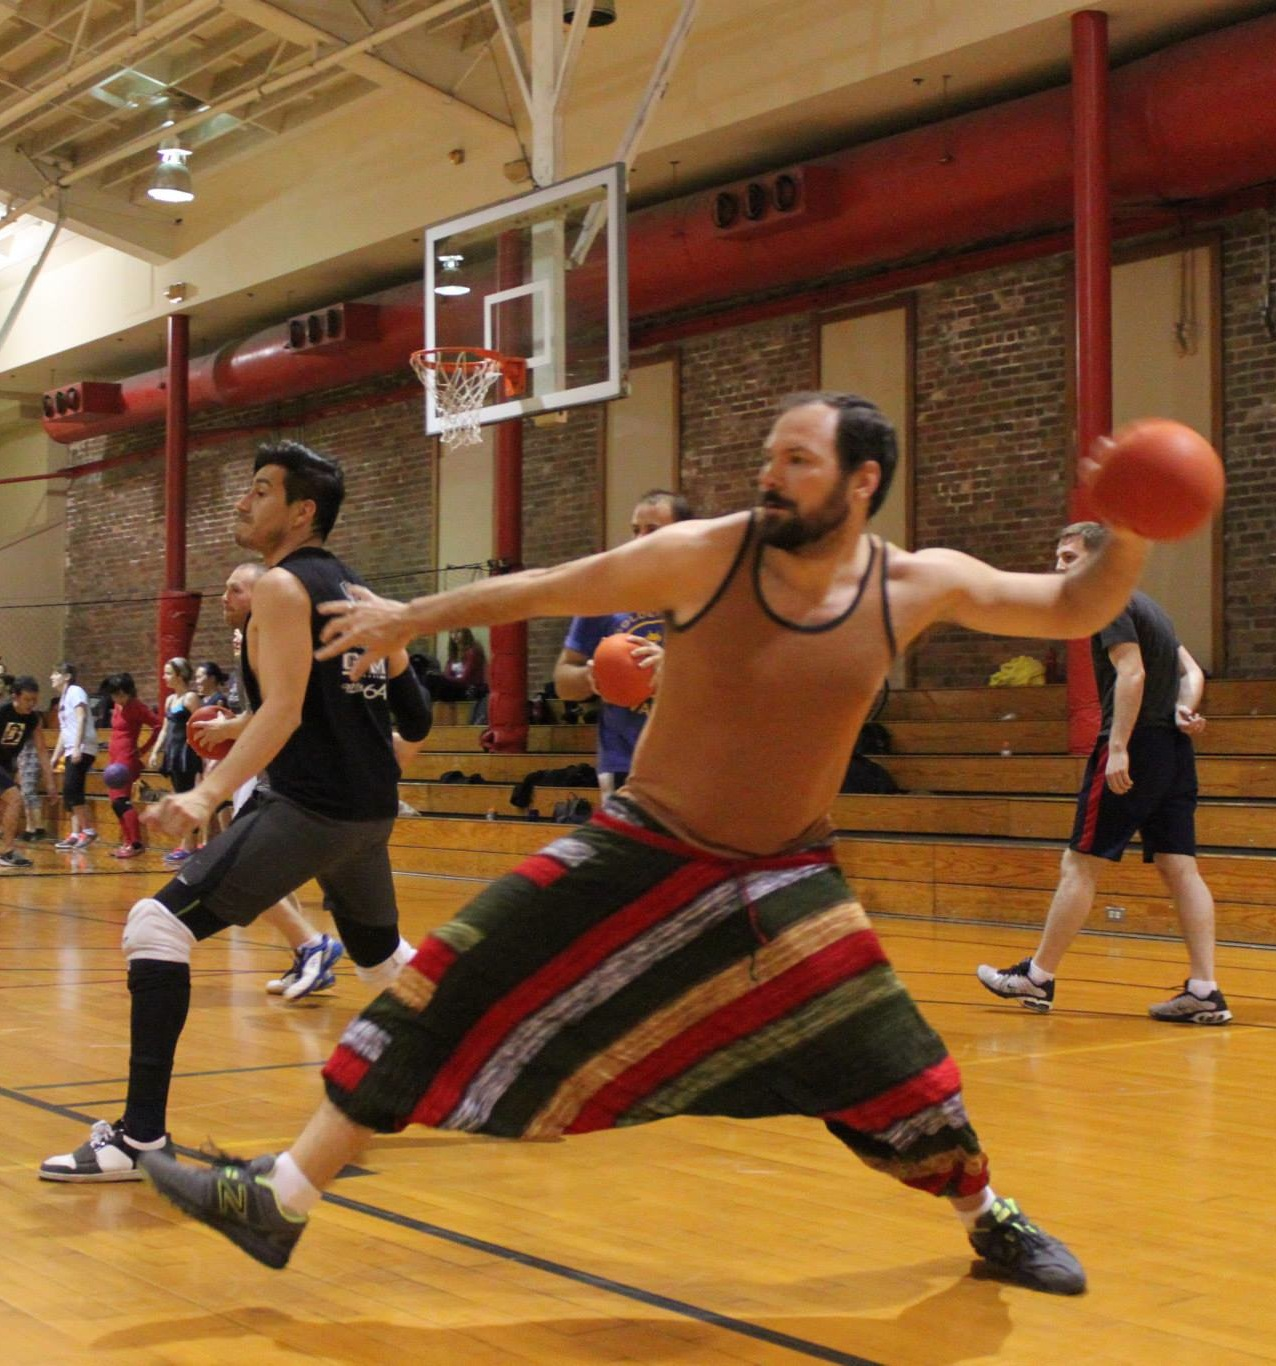 dodgeball  an extreme second chance at childhood